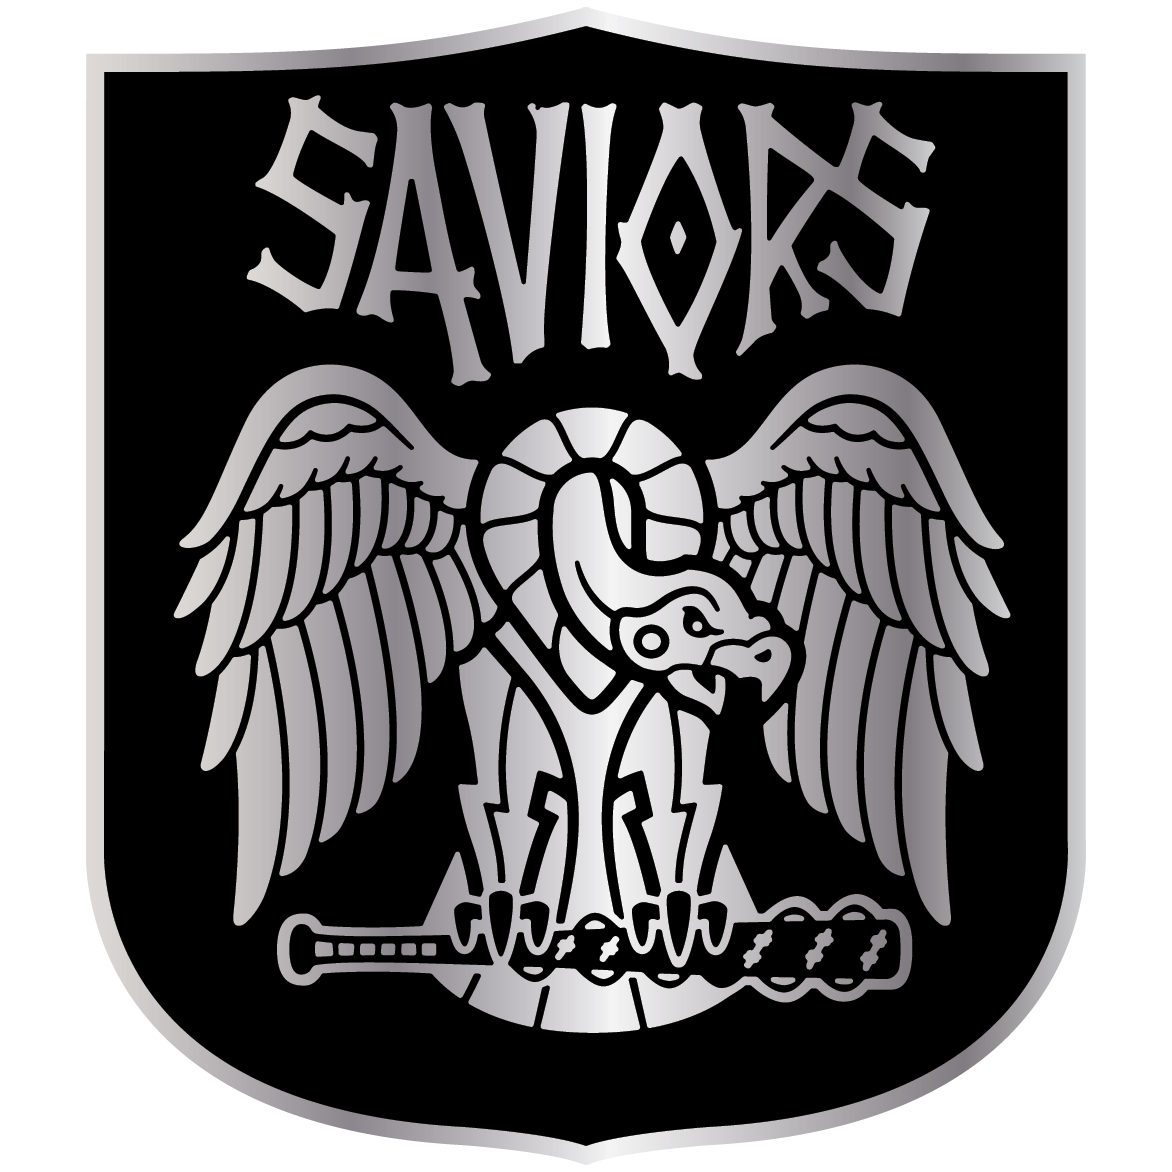 THE WALKING DEAD - Saviors Faction Pin